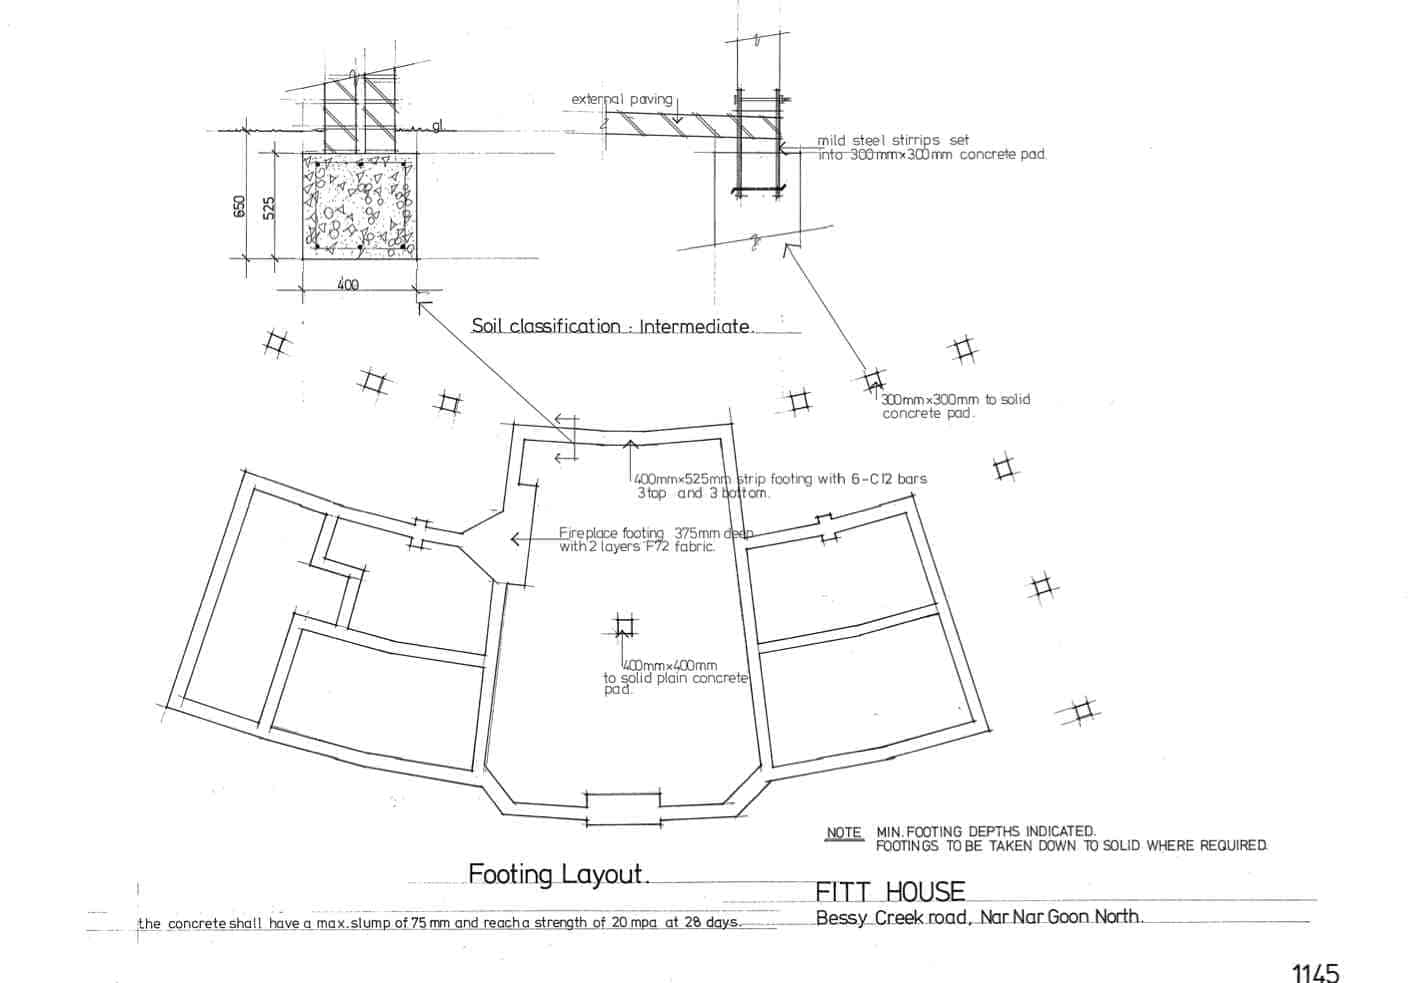 Fitt, 2: footing layout